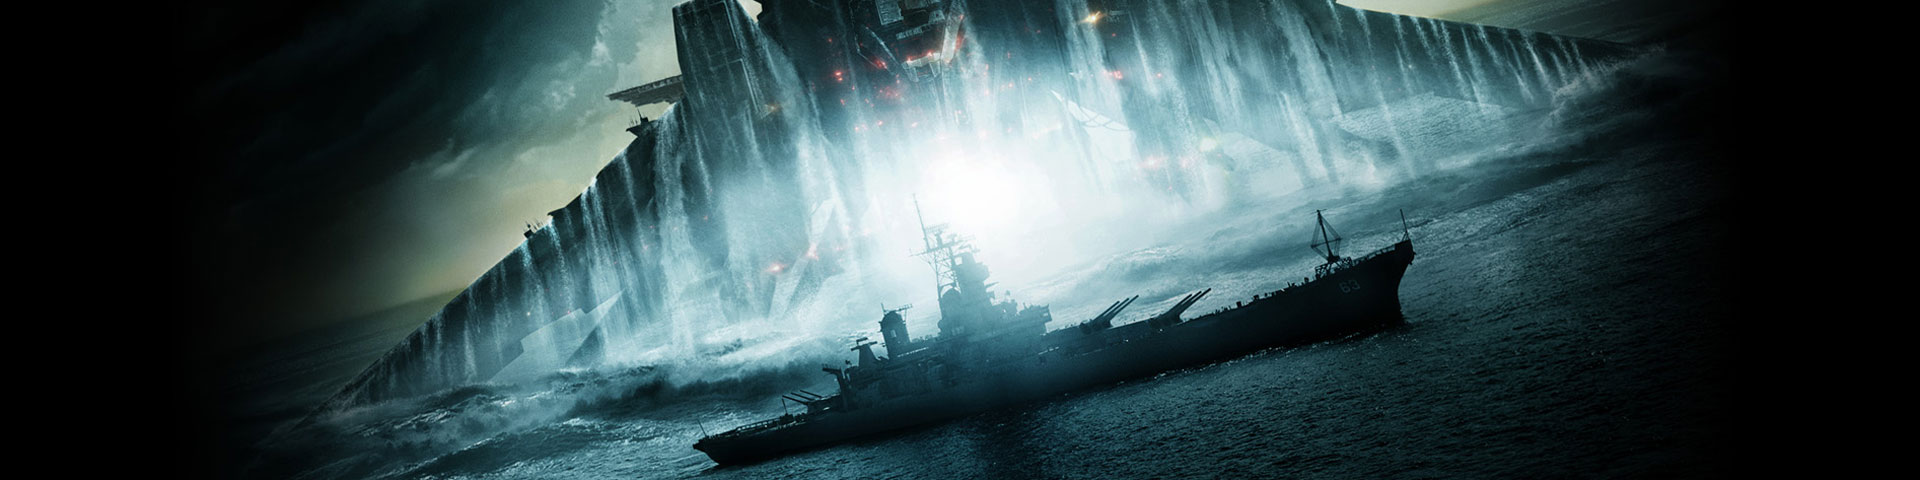 A large alien spaceship rises out of the ocean, looming over a battleship.